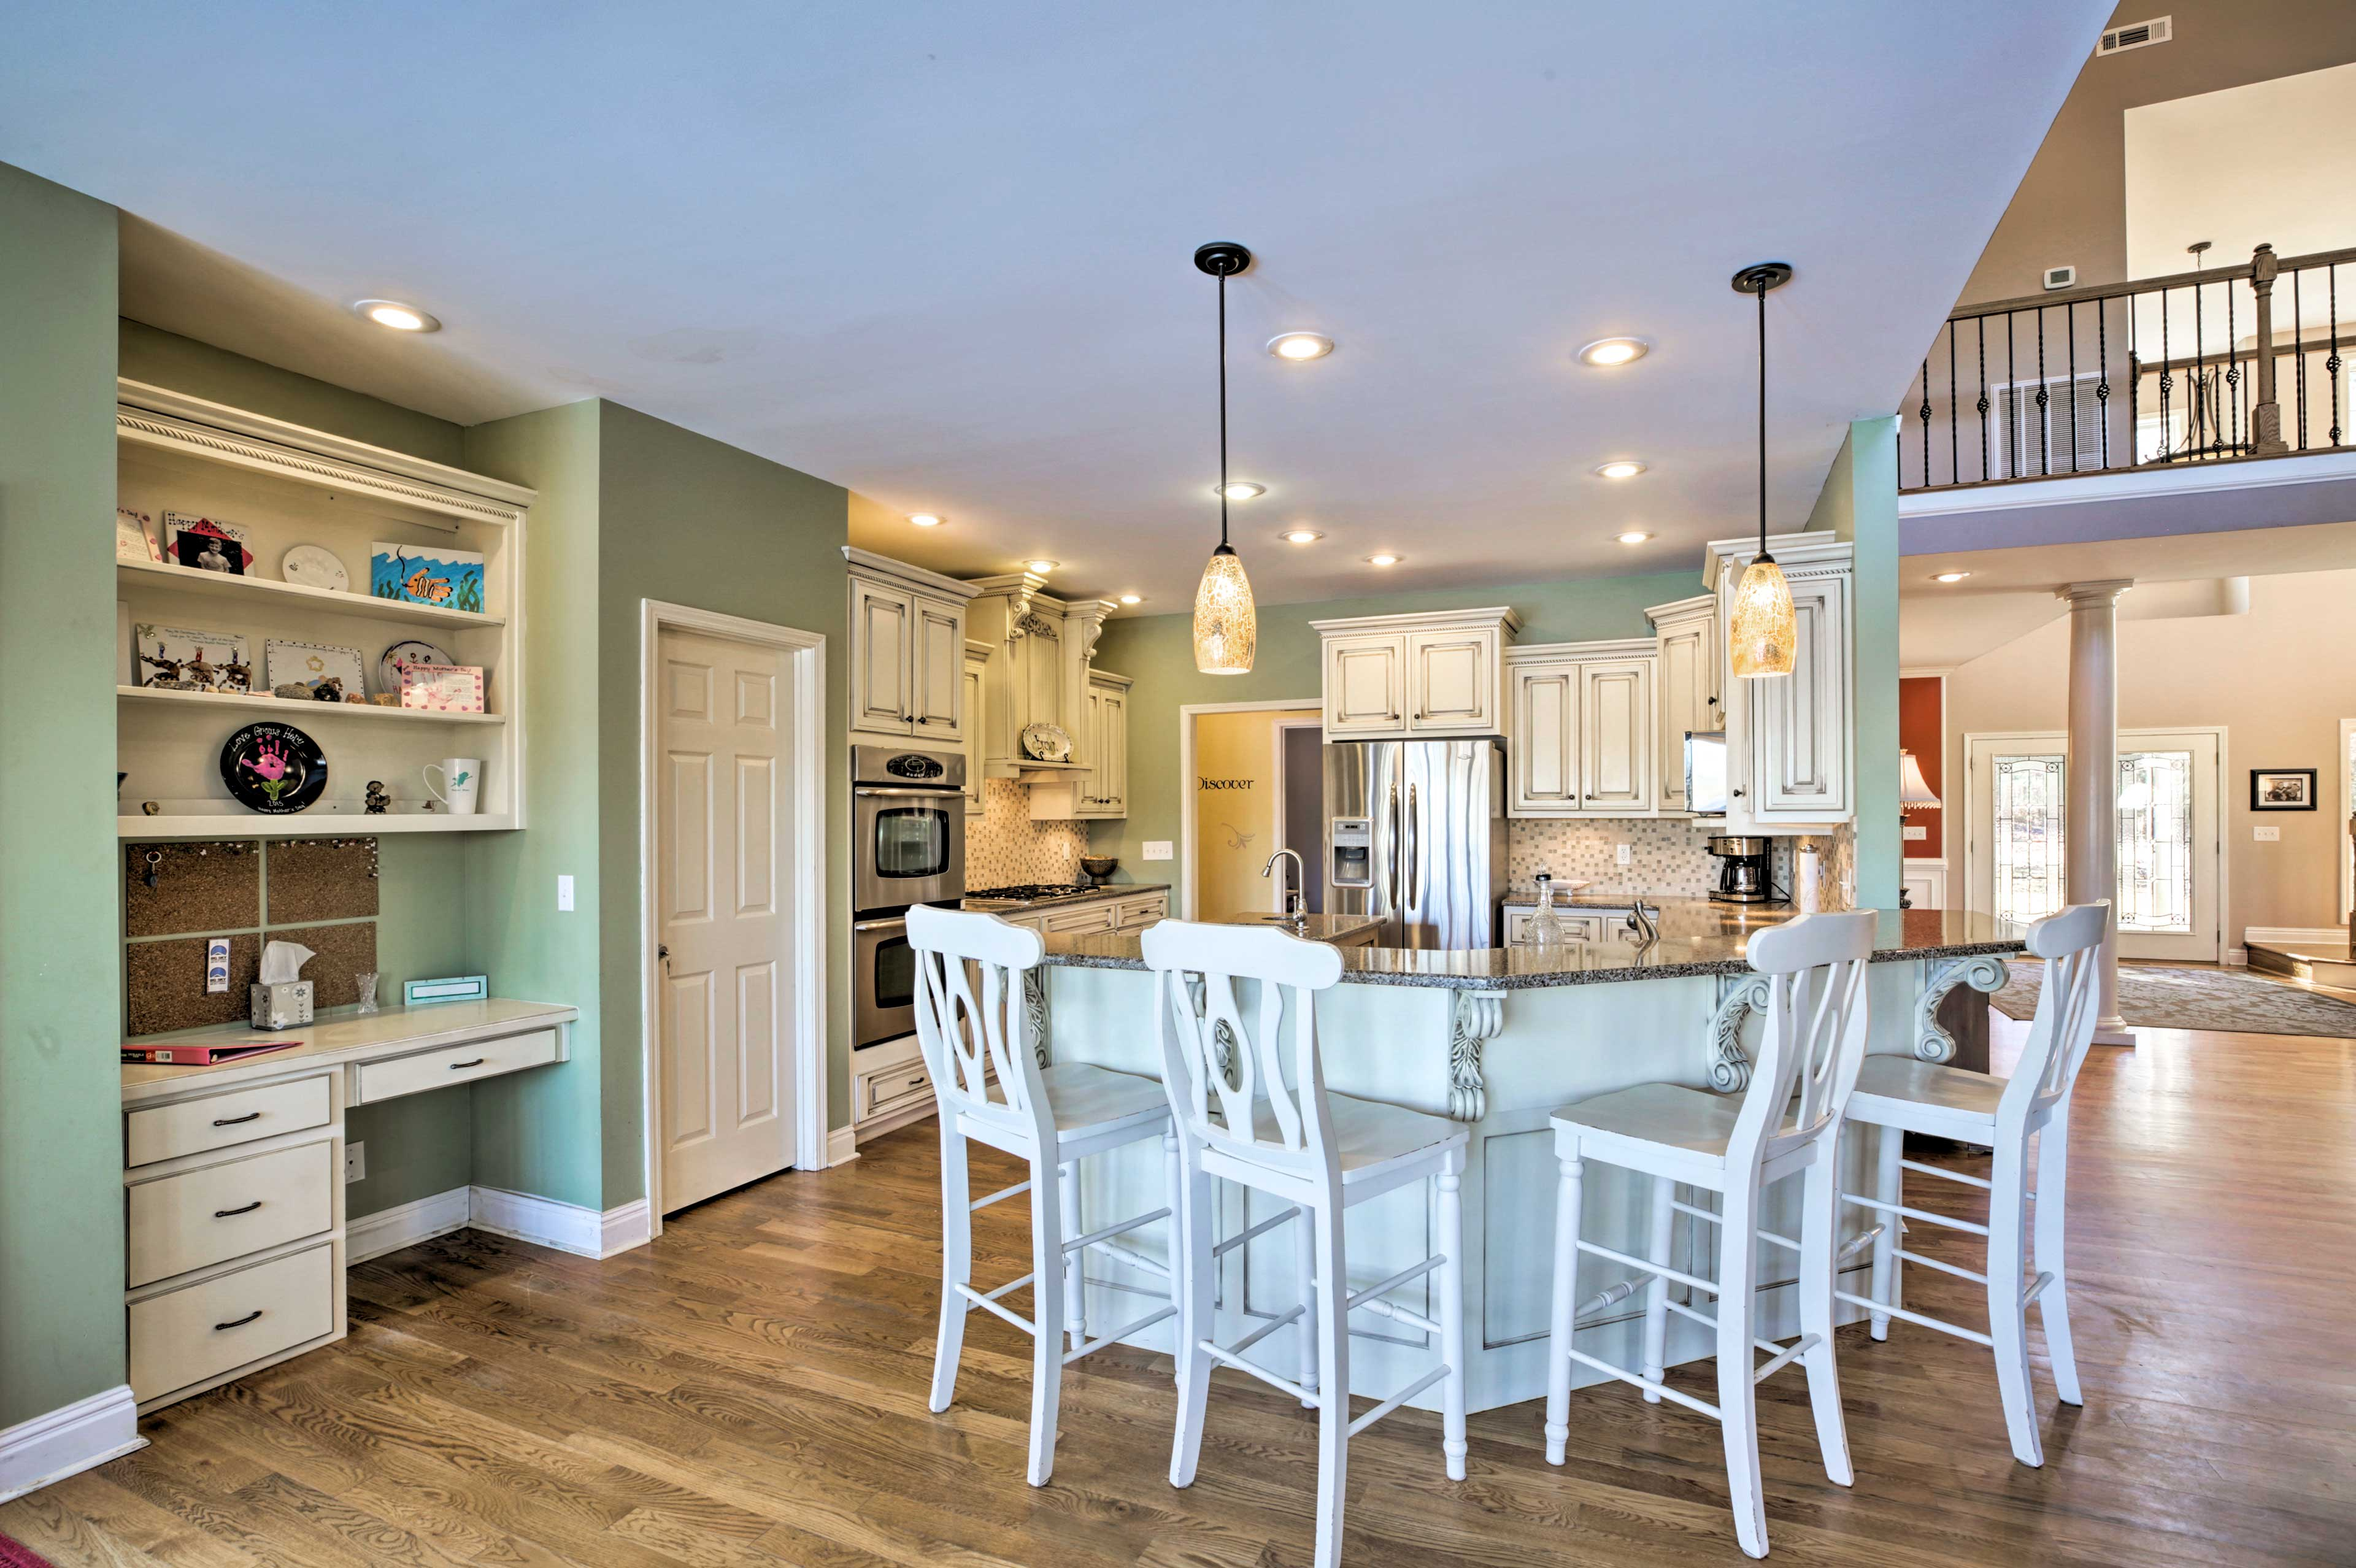 The kitchen area is sure to please every cook!